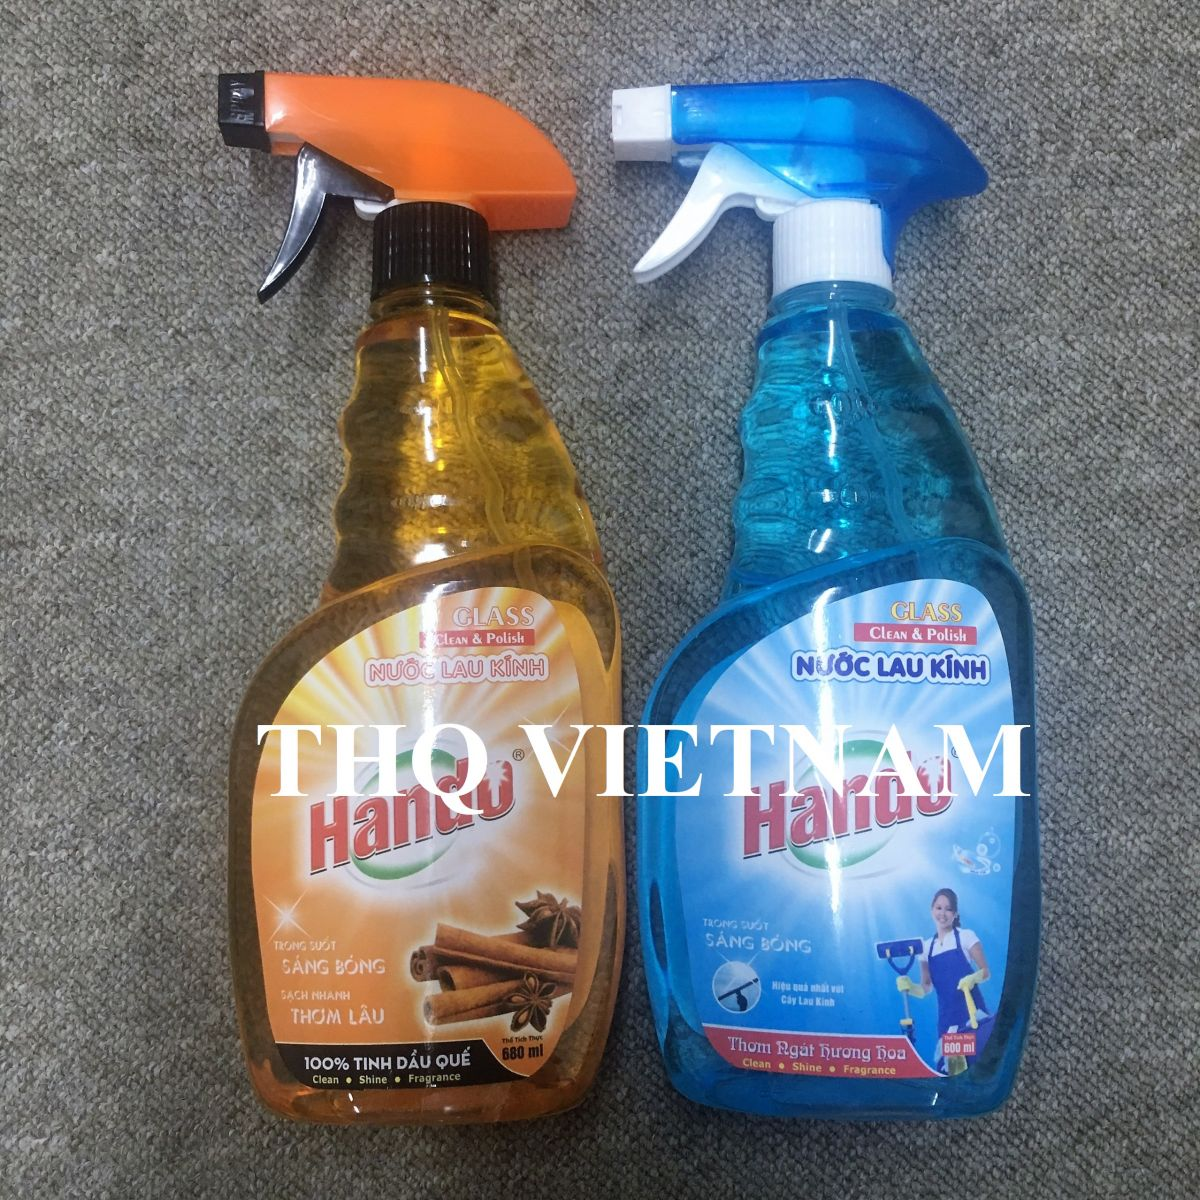 Glass Cleaner Spray 600ml, 680ml with 2 fragrances